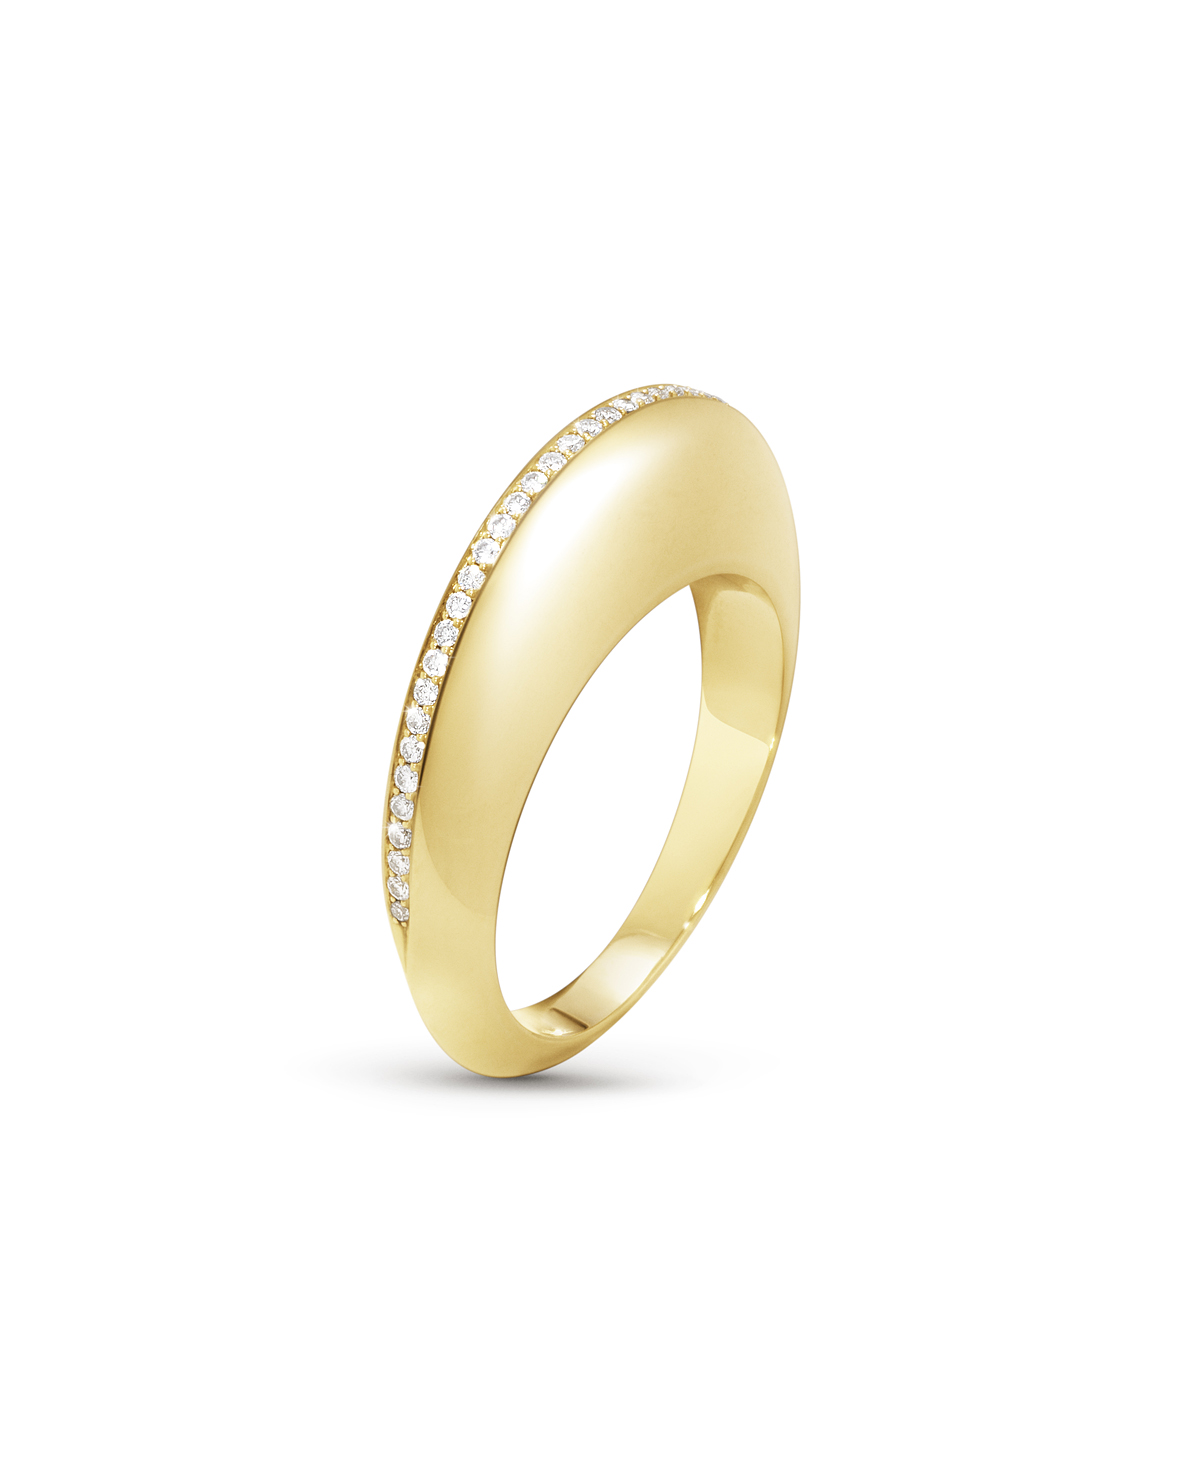 Image of   Georg Jensen DUNE ring - 3572140